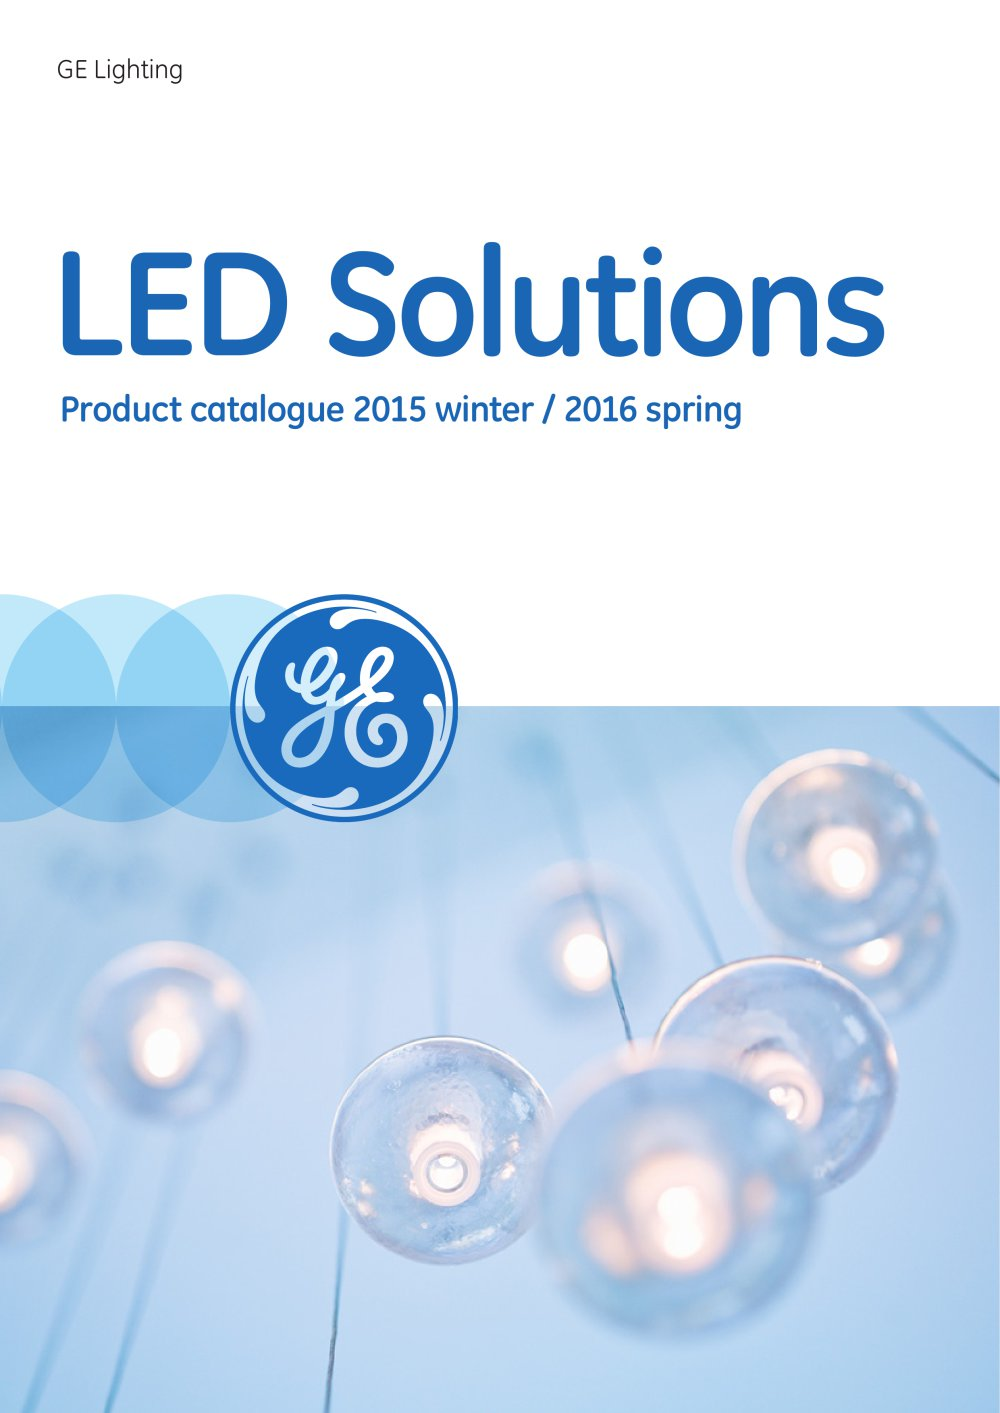 LED Solutions Product catalogue 2015 winter / 2016 spring - 1 / 11 Pages  sc 1 st  Catalogues Archiexpo & LED Solutions Product catalogue 2015 winter / 2016 spring - GE ... azcodes.com